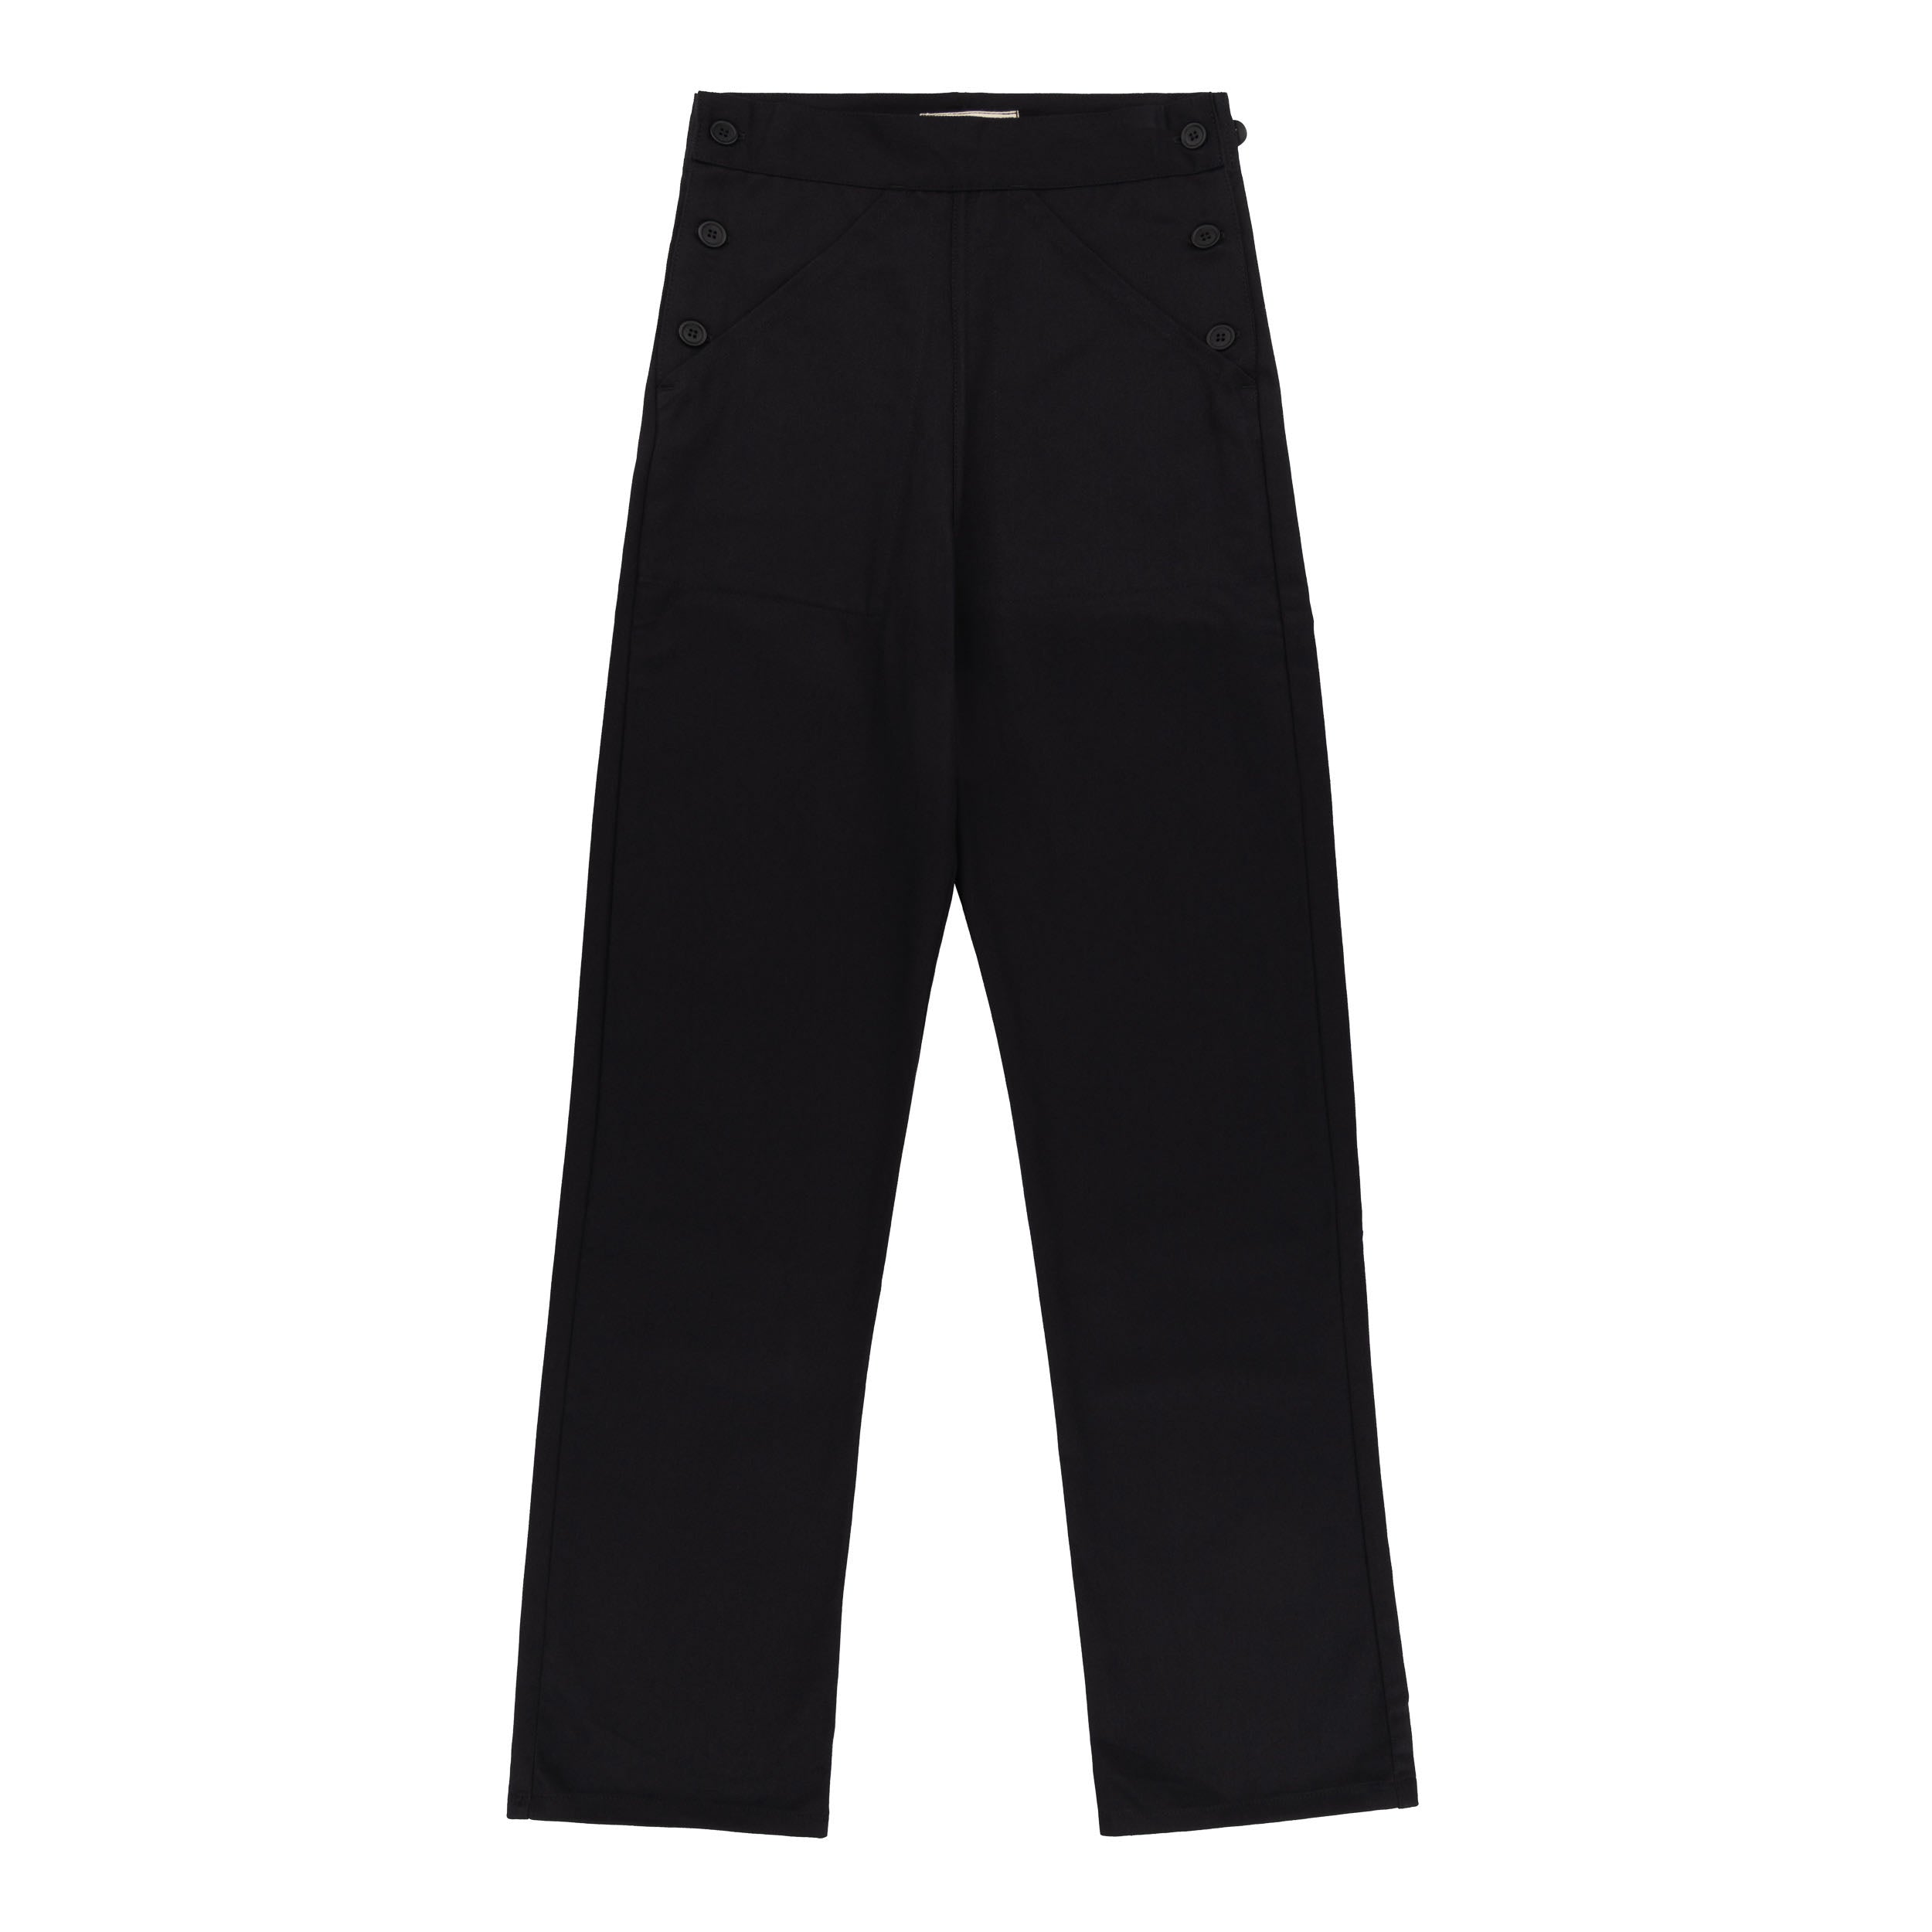 Women's Work Trouser